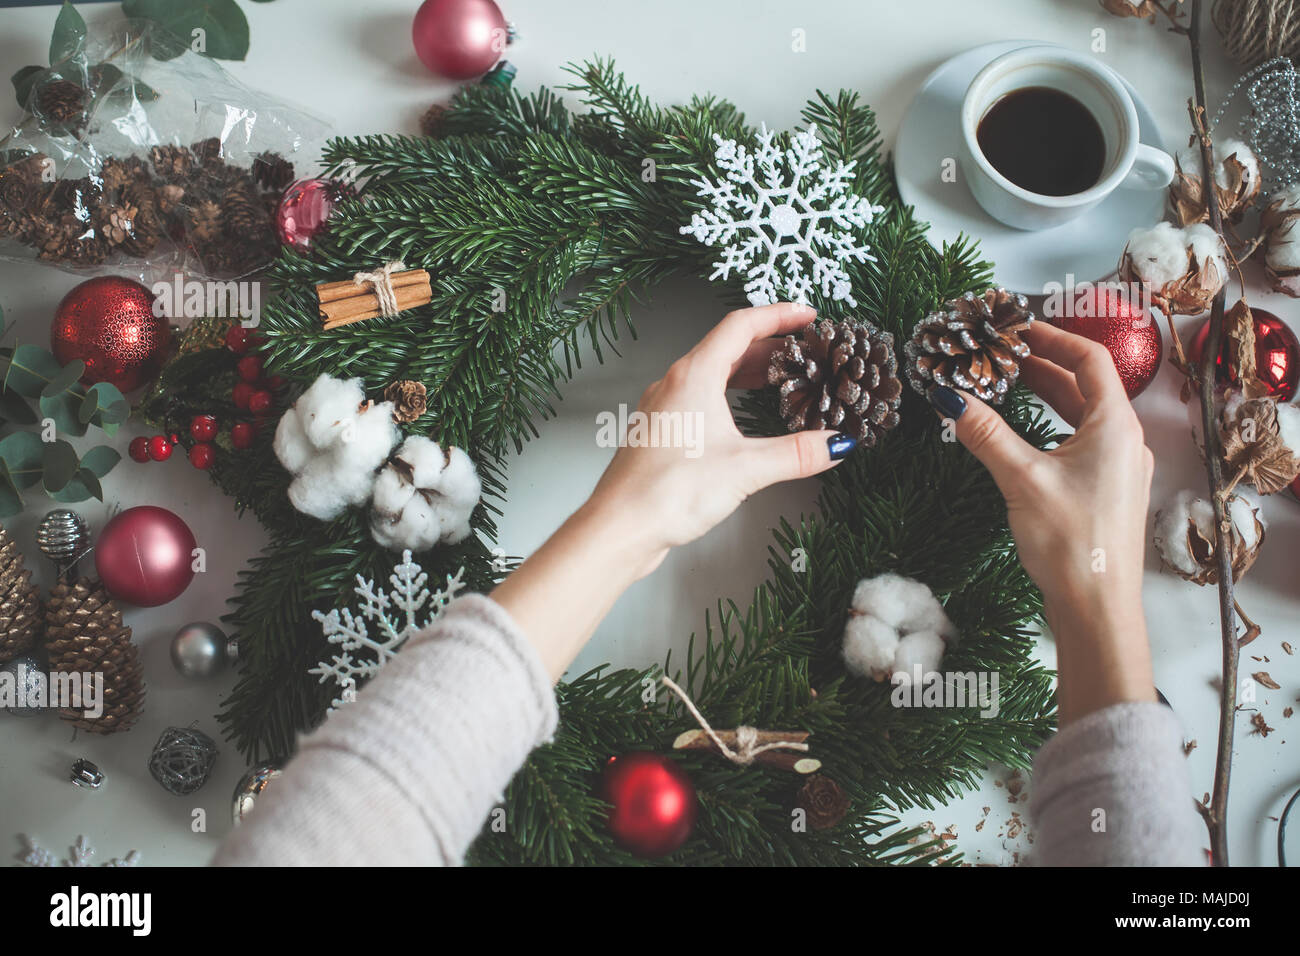 Winter Holidays Concept. Christmas Decorations, Glass Balls, Evergreen Tree Twig, Female Hands - Stock Image